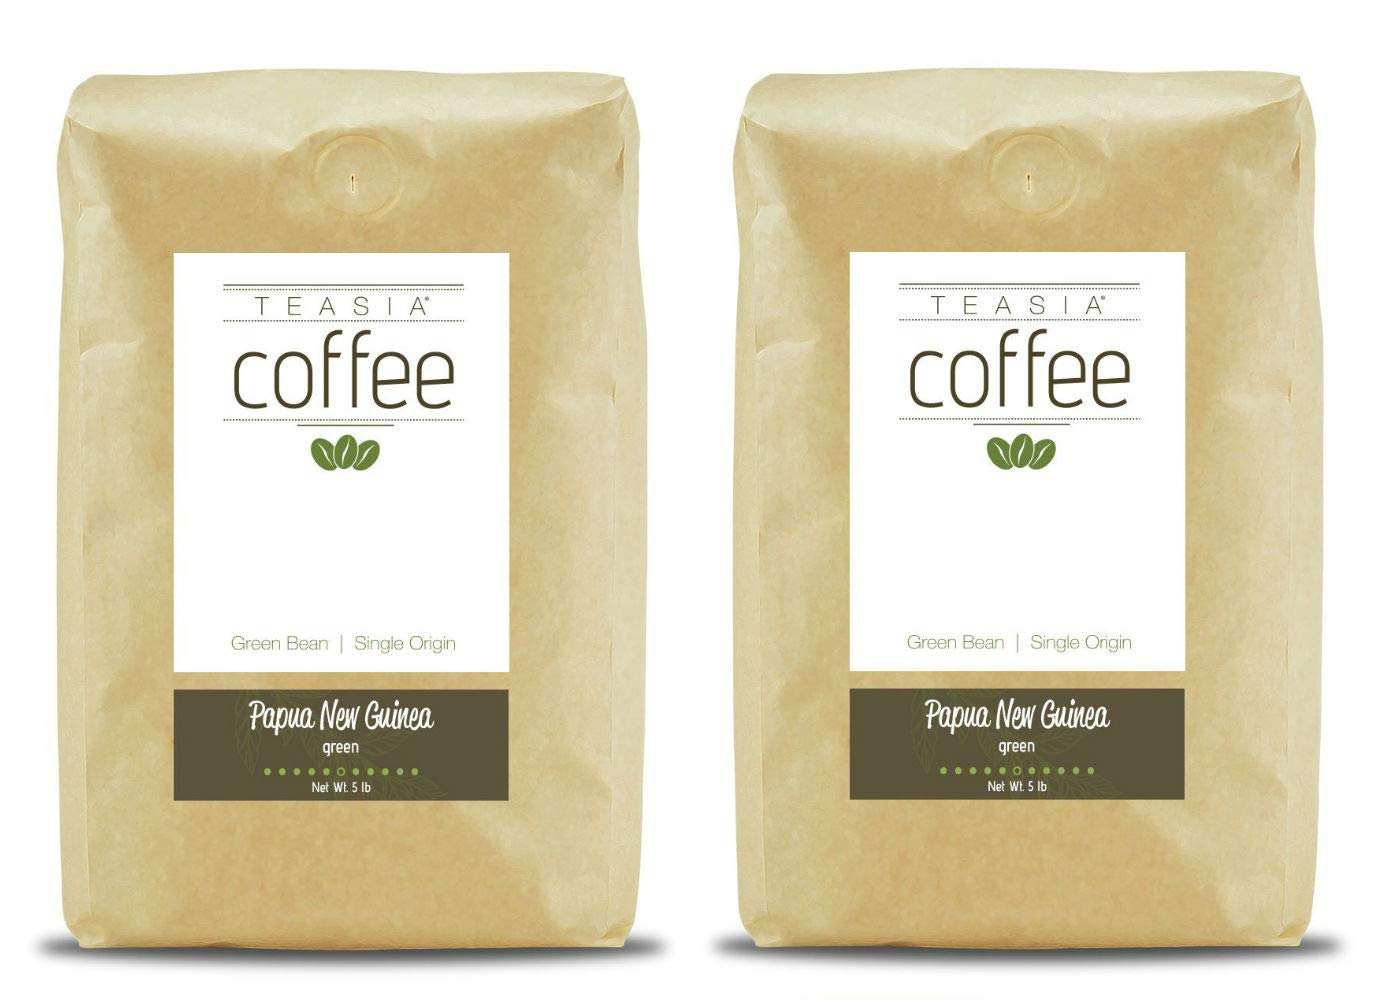 Teasia Coffee, Papua New Guinea, Single Origin Fair Trade, Green Unroasted Whole Coffee Beans, 5-Pound Bag (2-Pack)